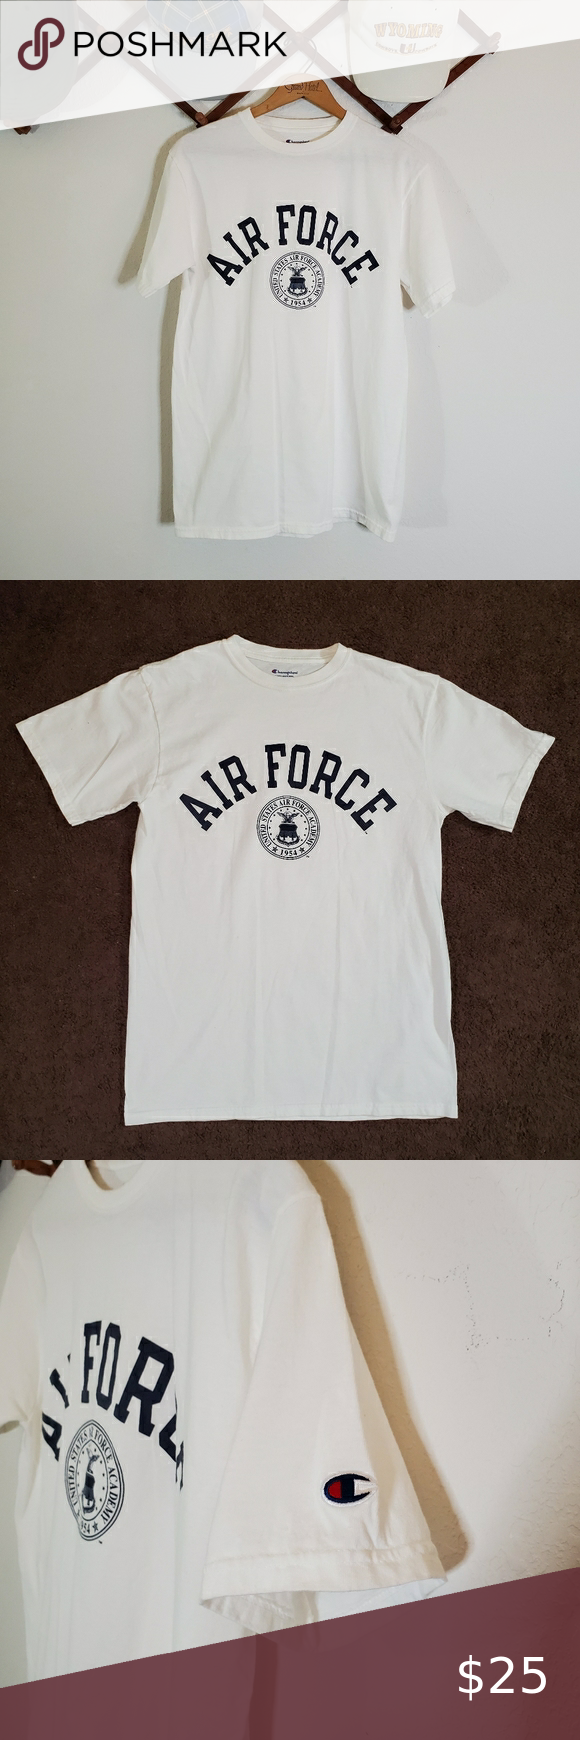 Champion United States Air Force Academy Tshirt Size